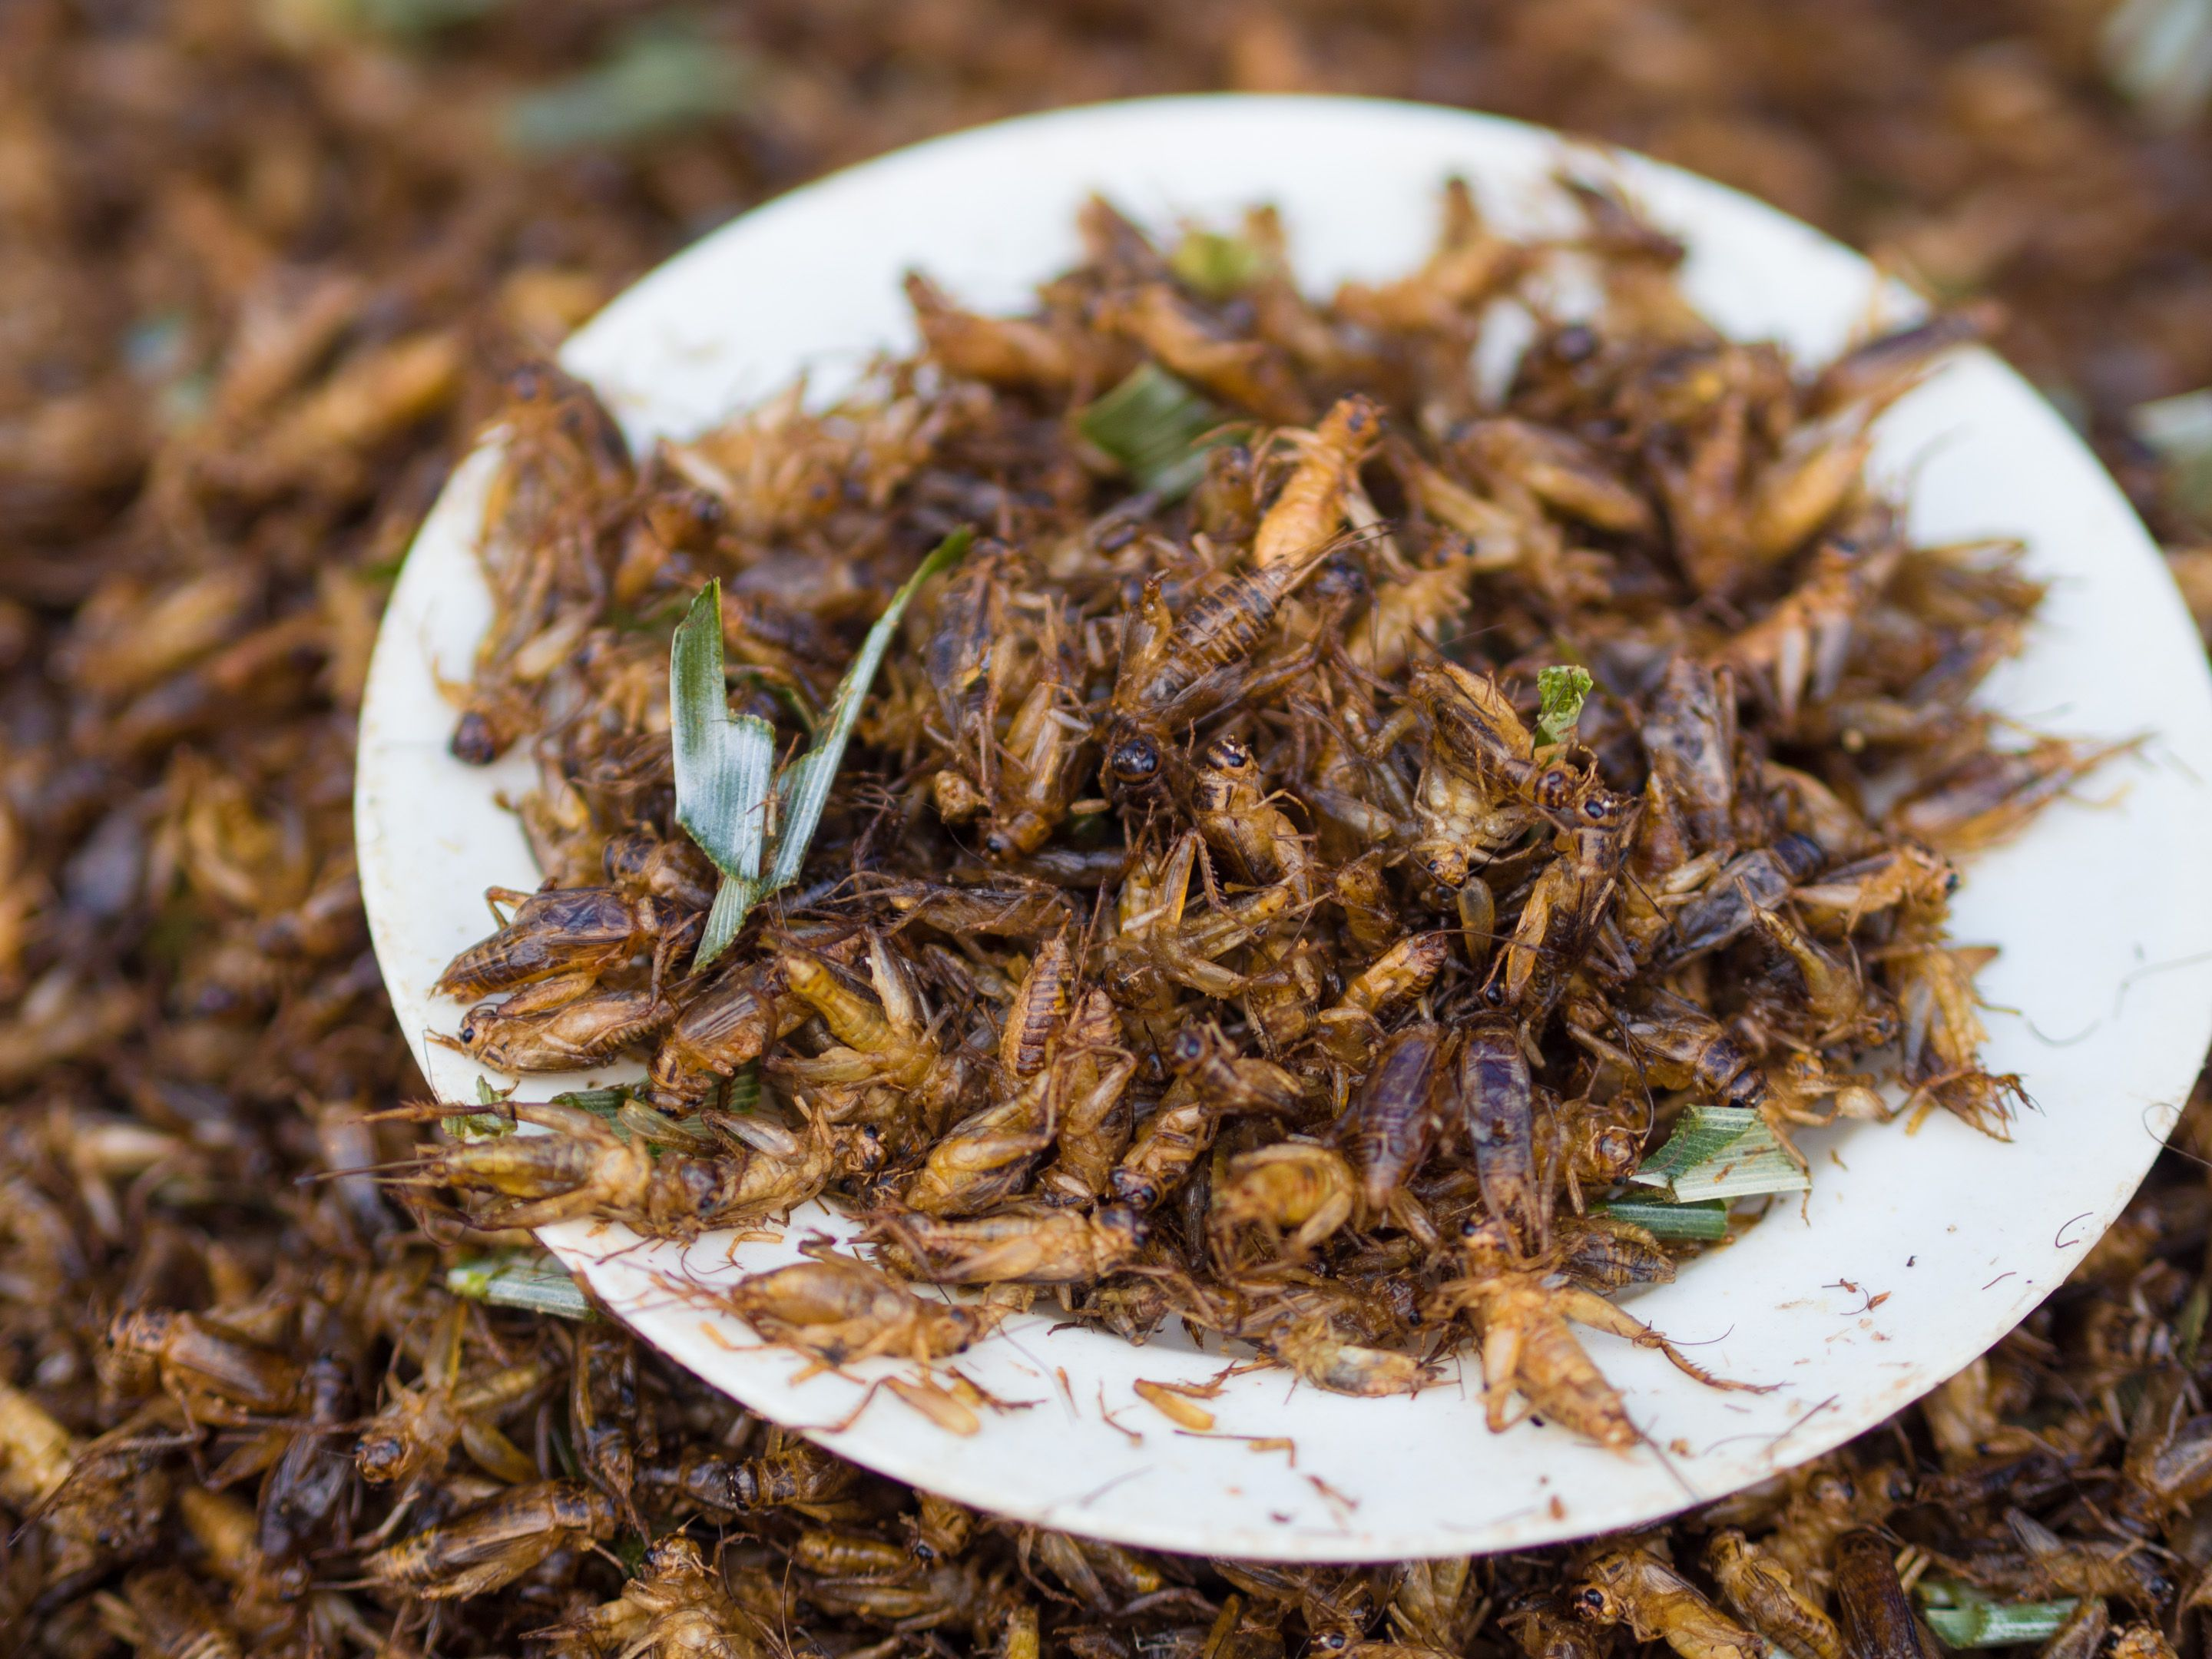 comer insectos legal